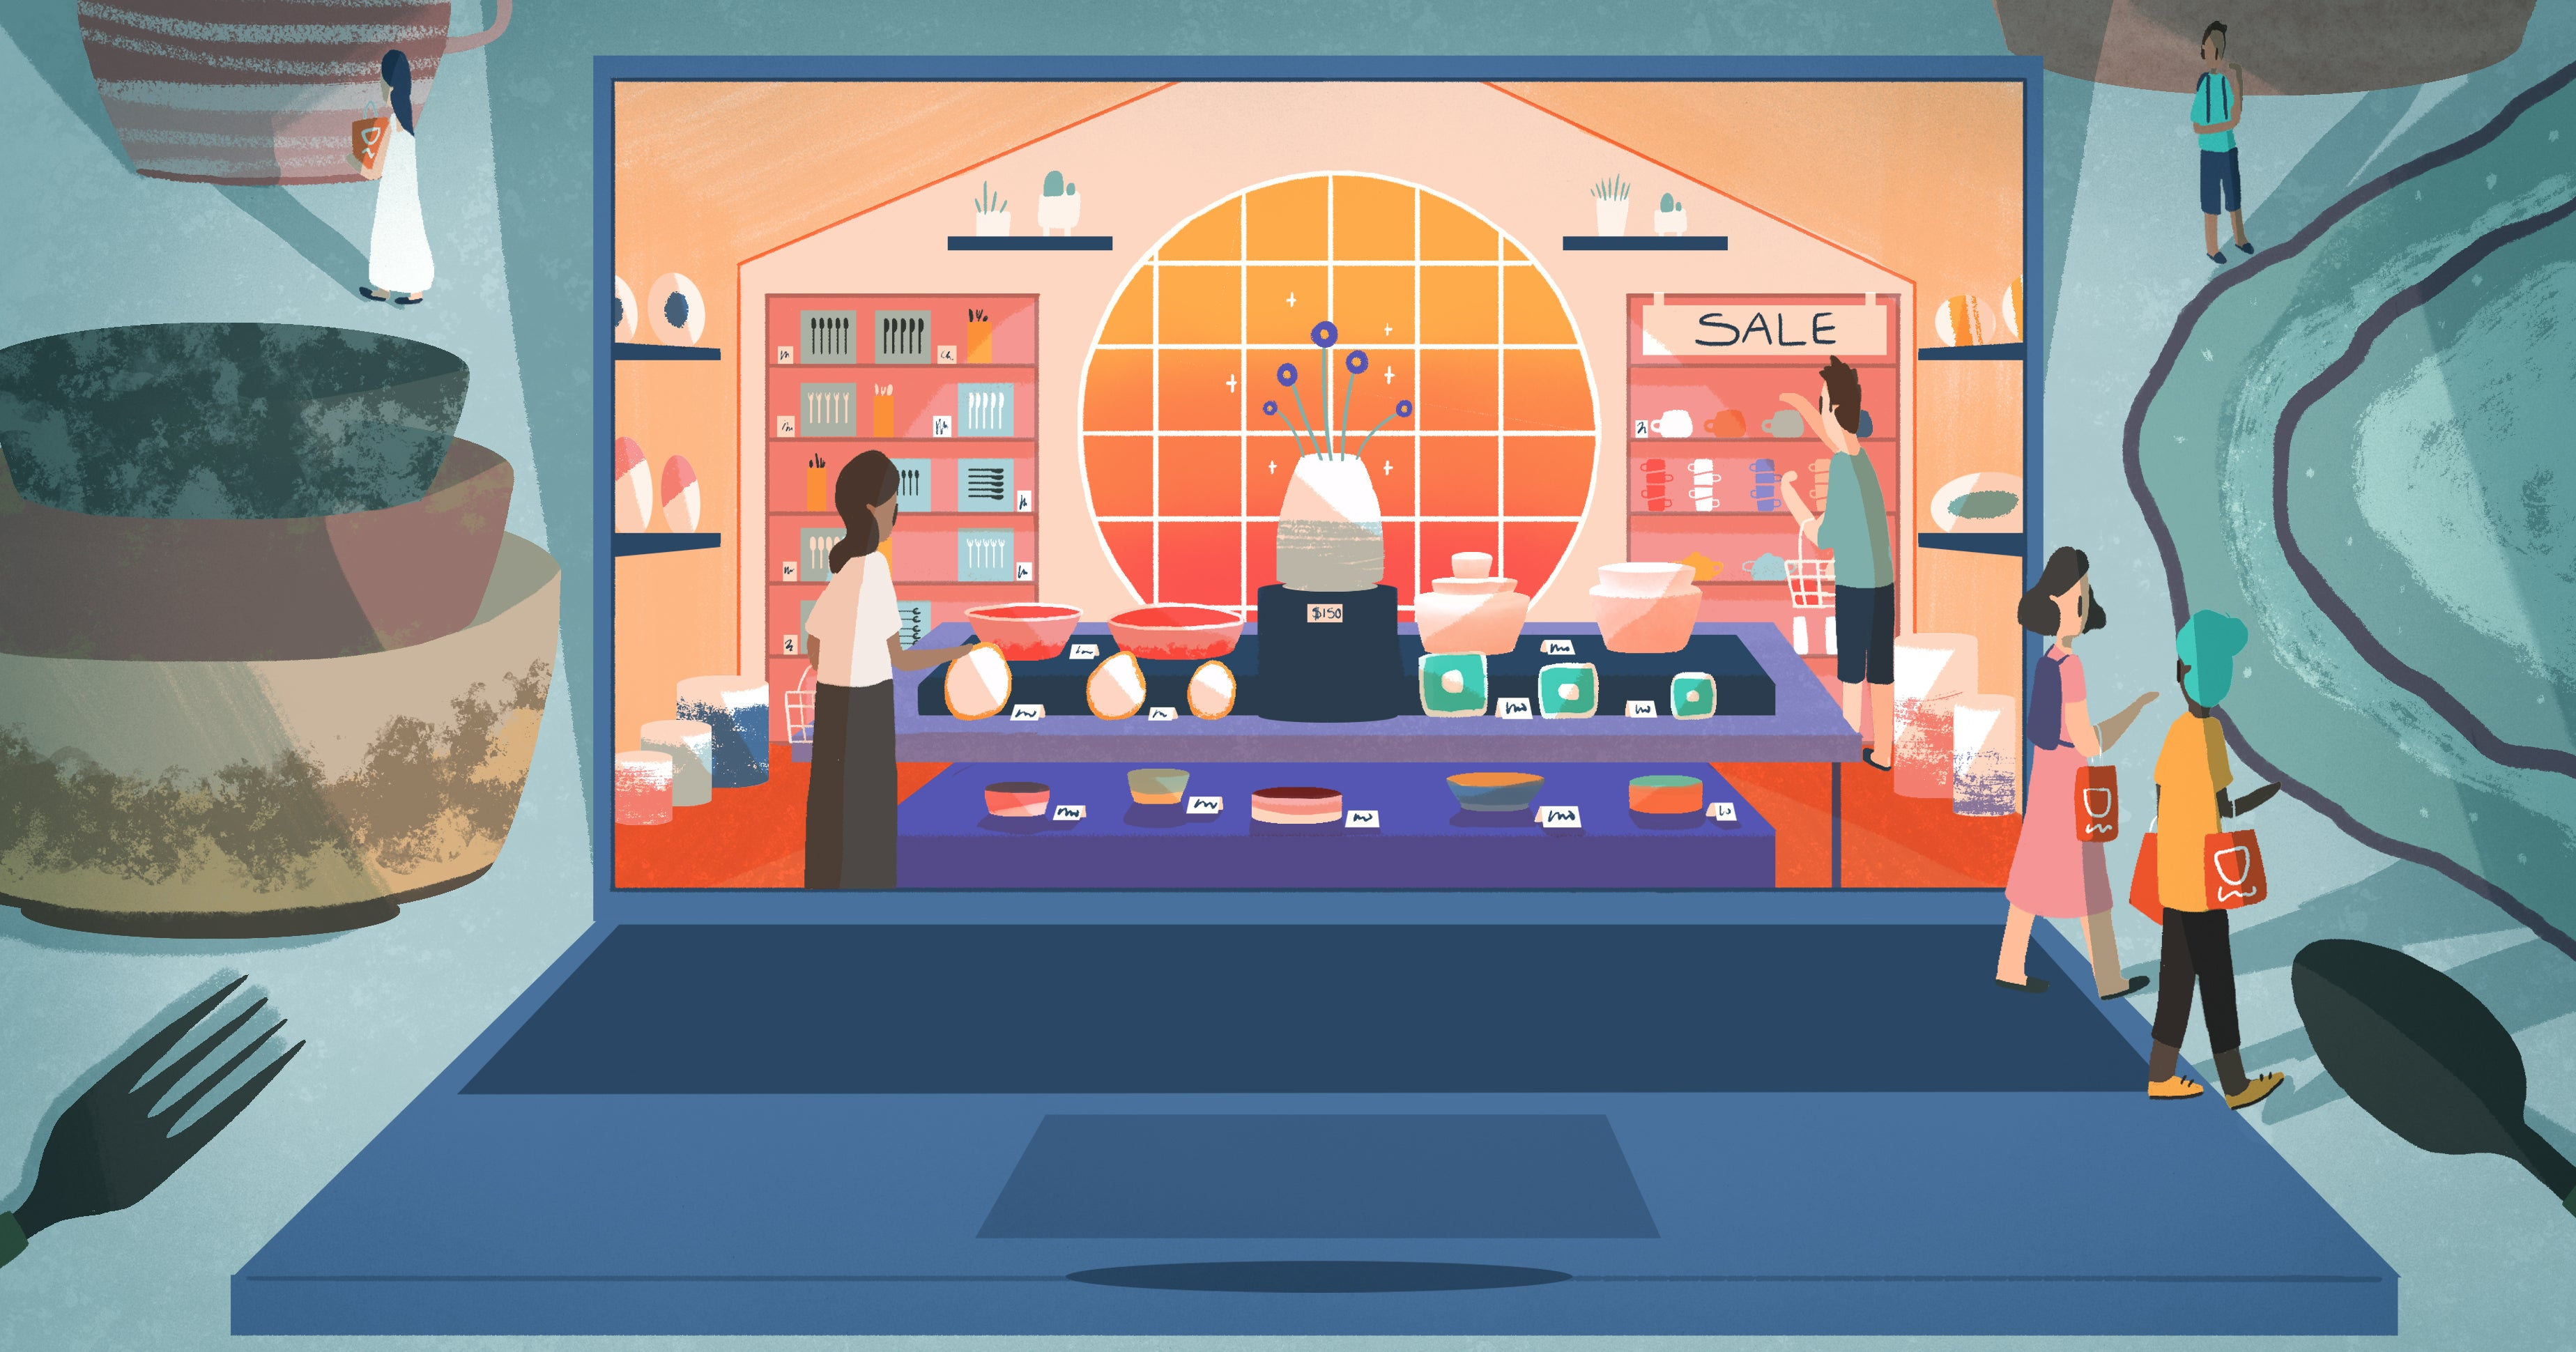 Illustration of a shop's inventory being organized into the front display or shelves on the side of the store to optimize for sales